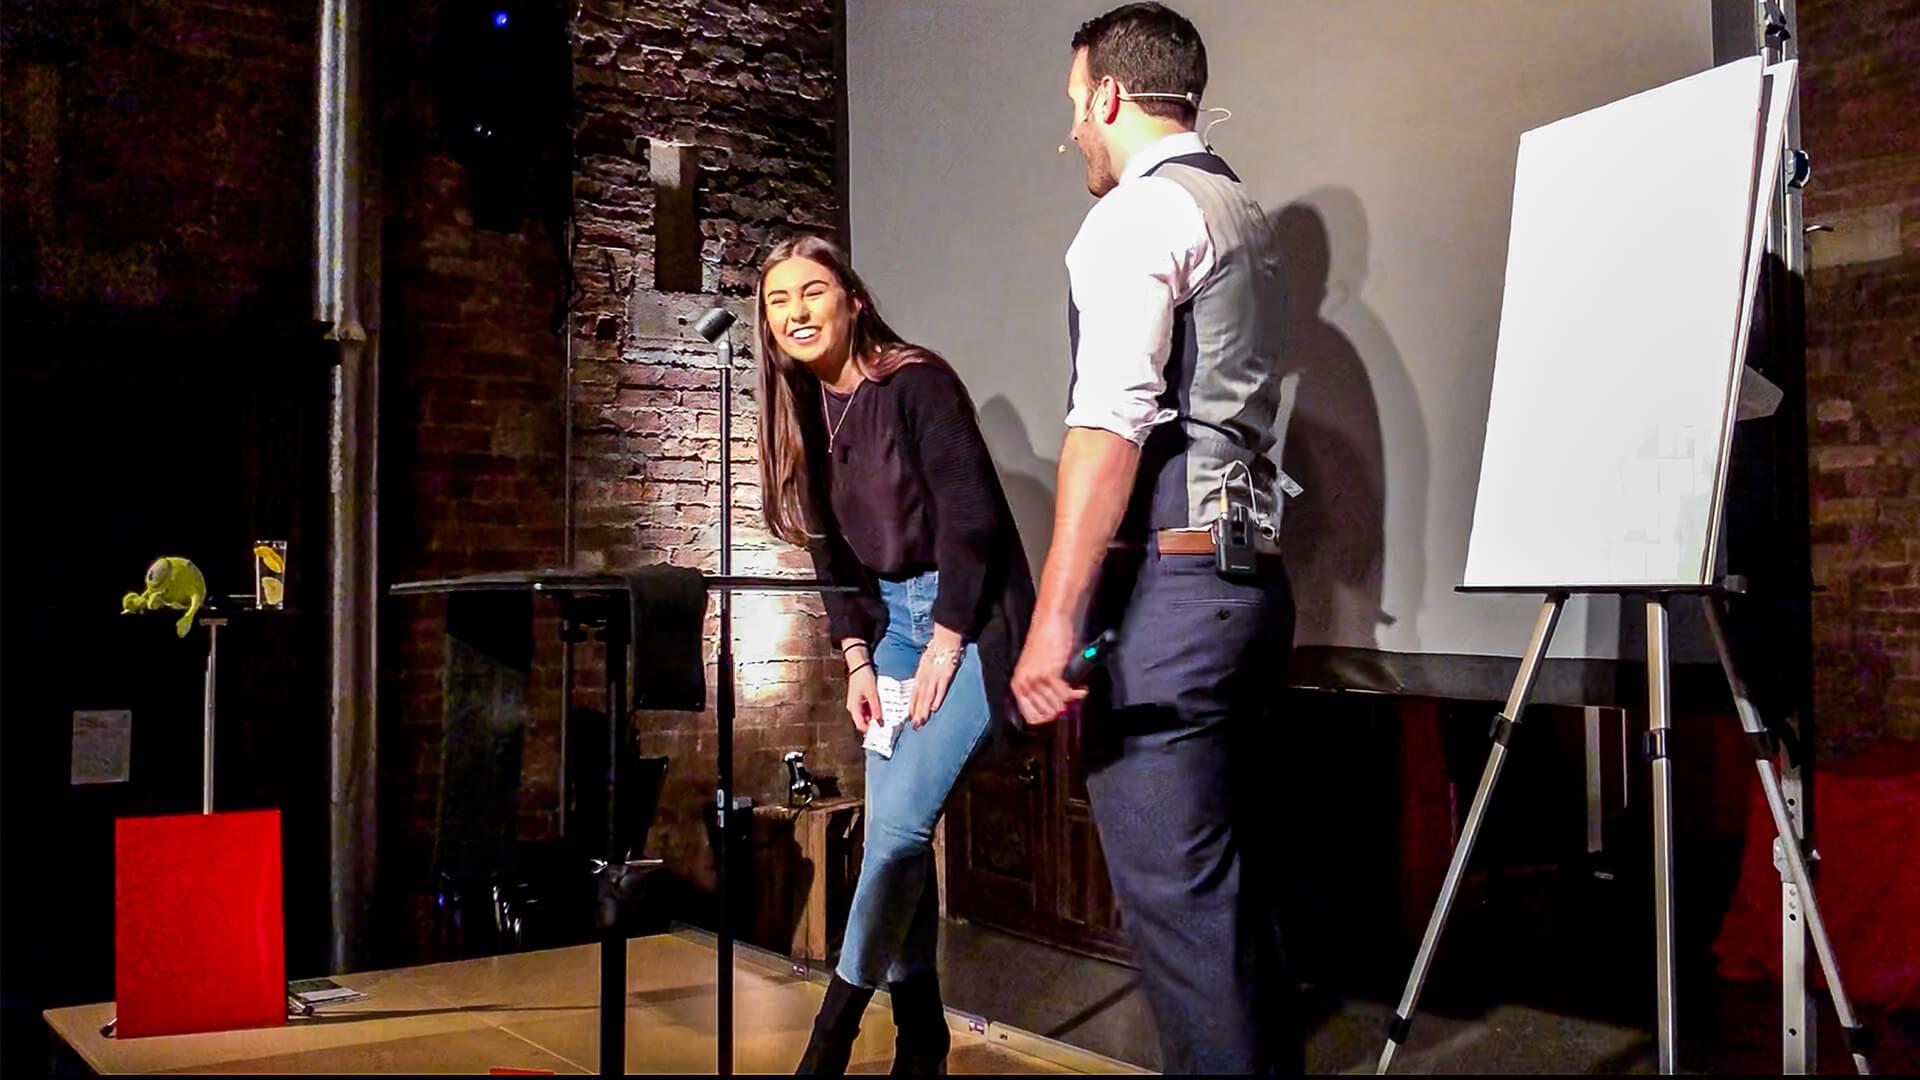 Corporate event entertainment Mind reader and hypnotist Aaron Calvert on stage with girl laughing at incredible show